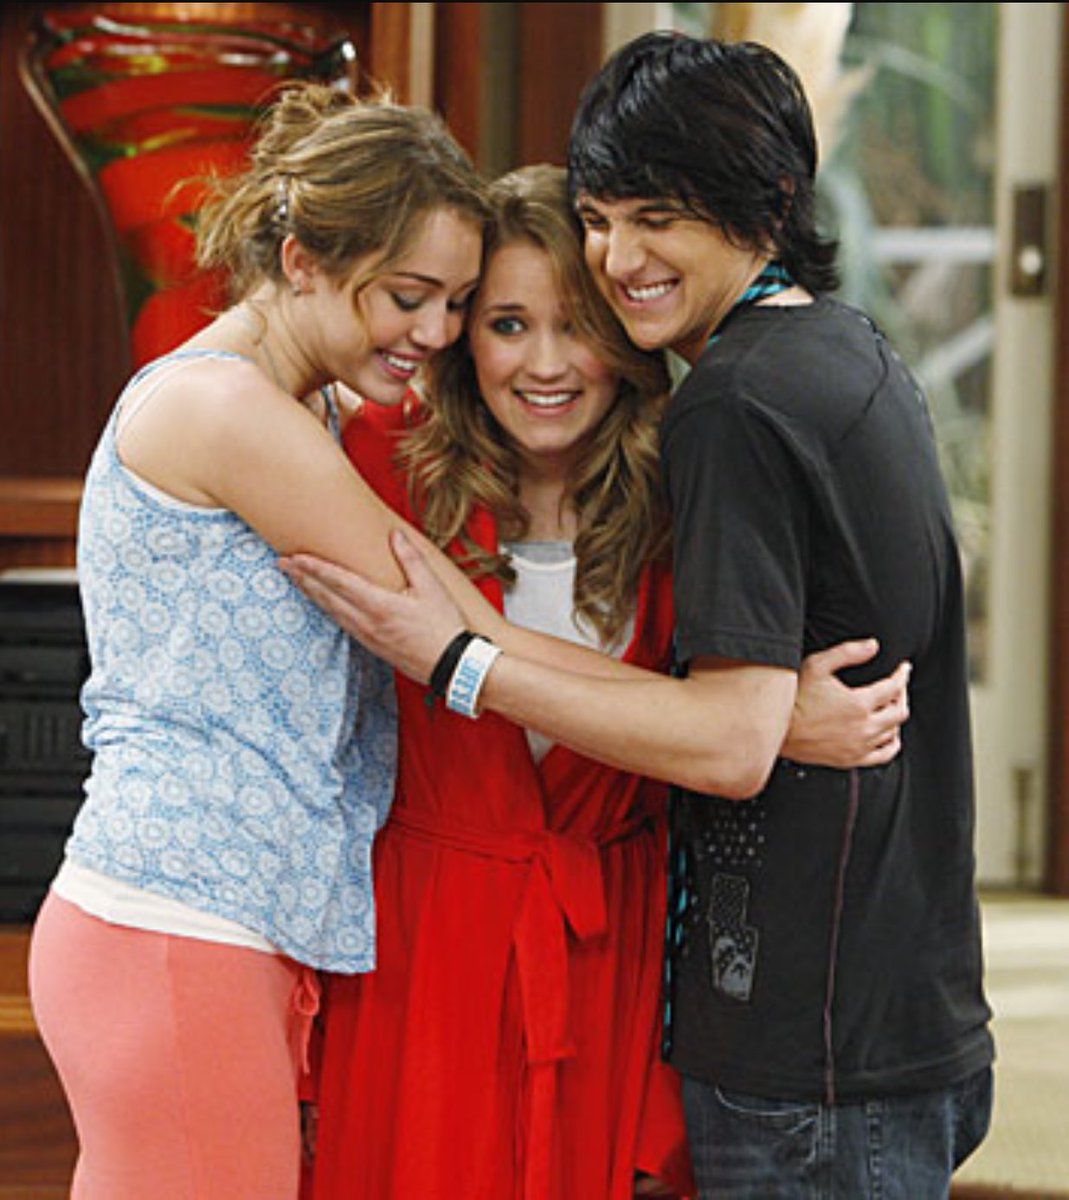 Emily Osment And Miley Cyrus 2013